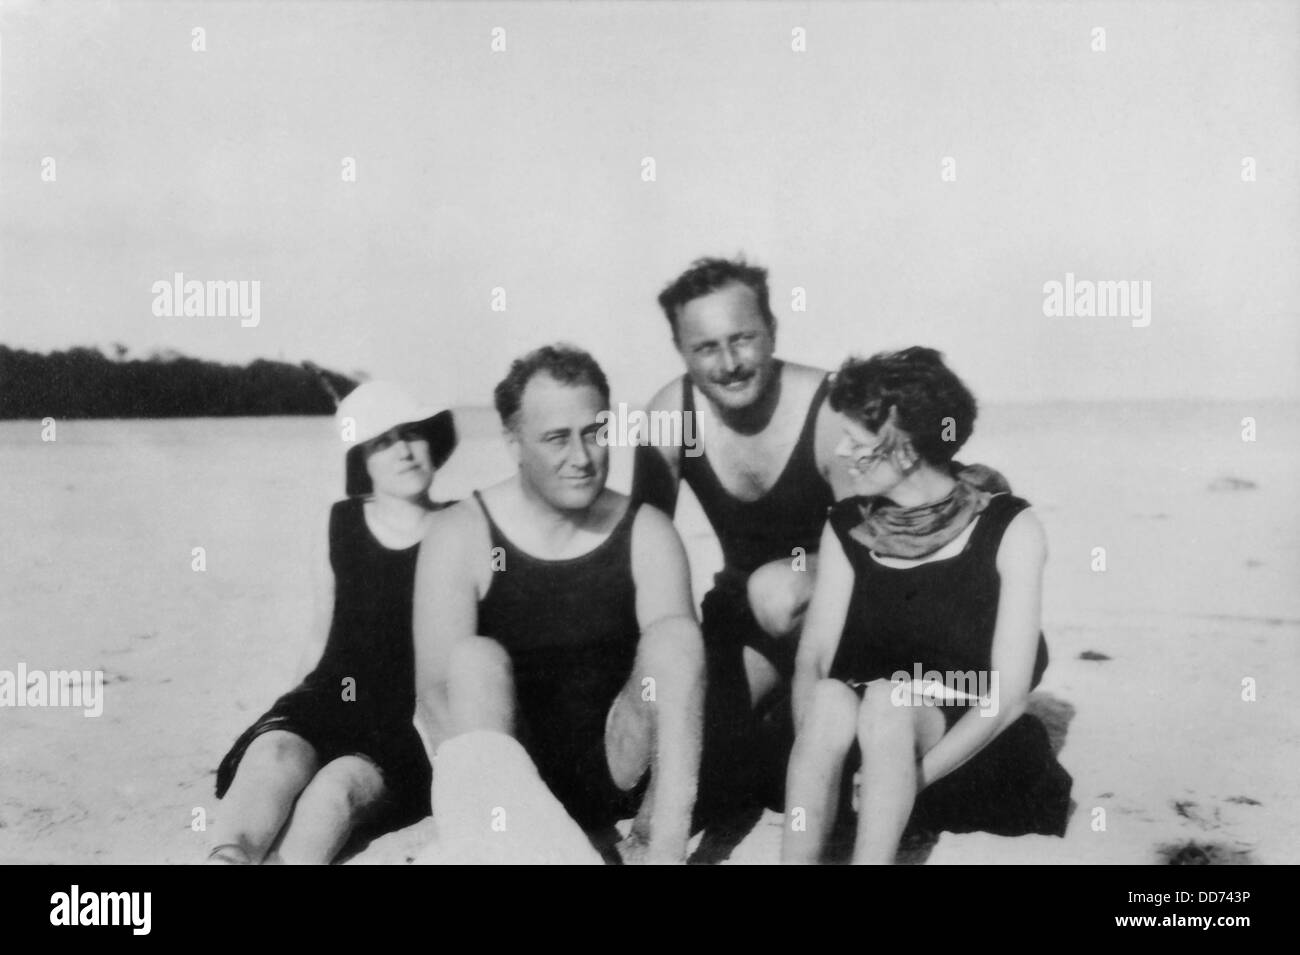 Franklin Roosevelt and Missy Lehand in Florida in 1924. With them is Dutchess County bird watching authority, Maunsell - Stock Image